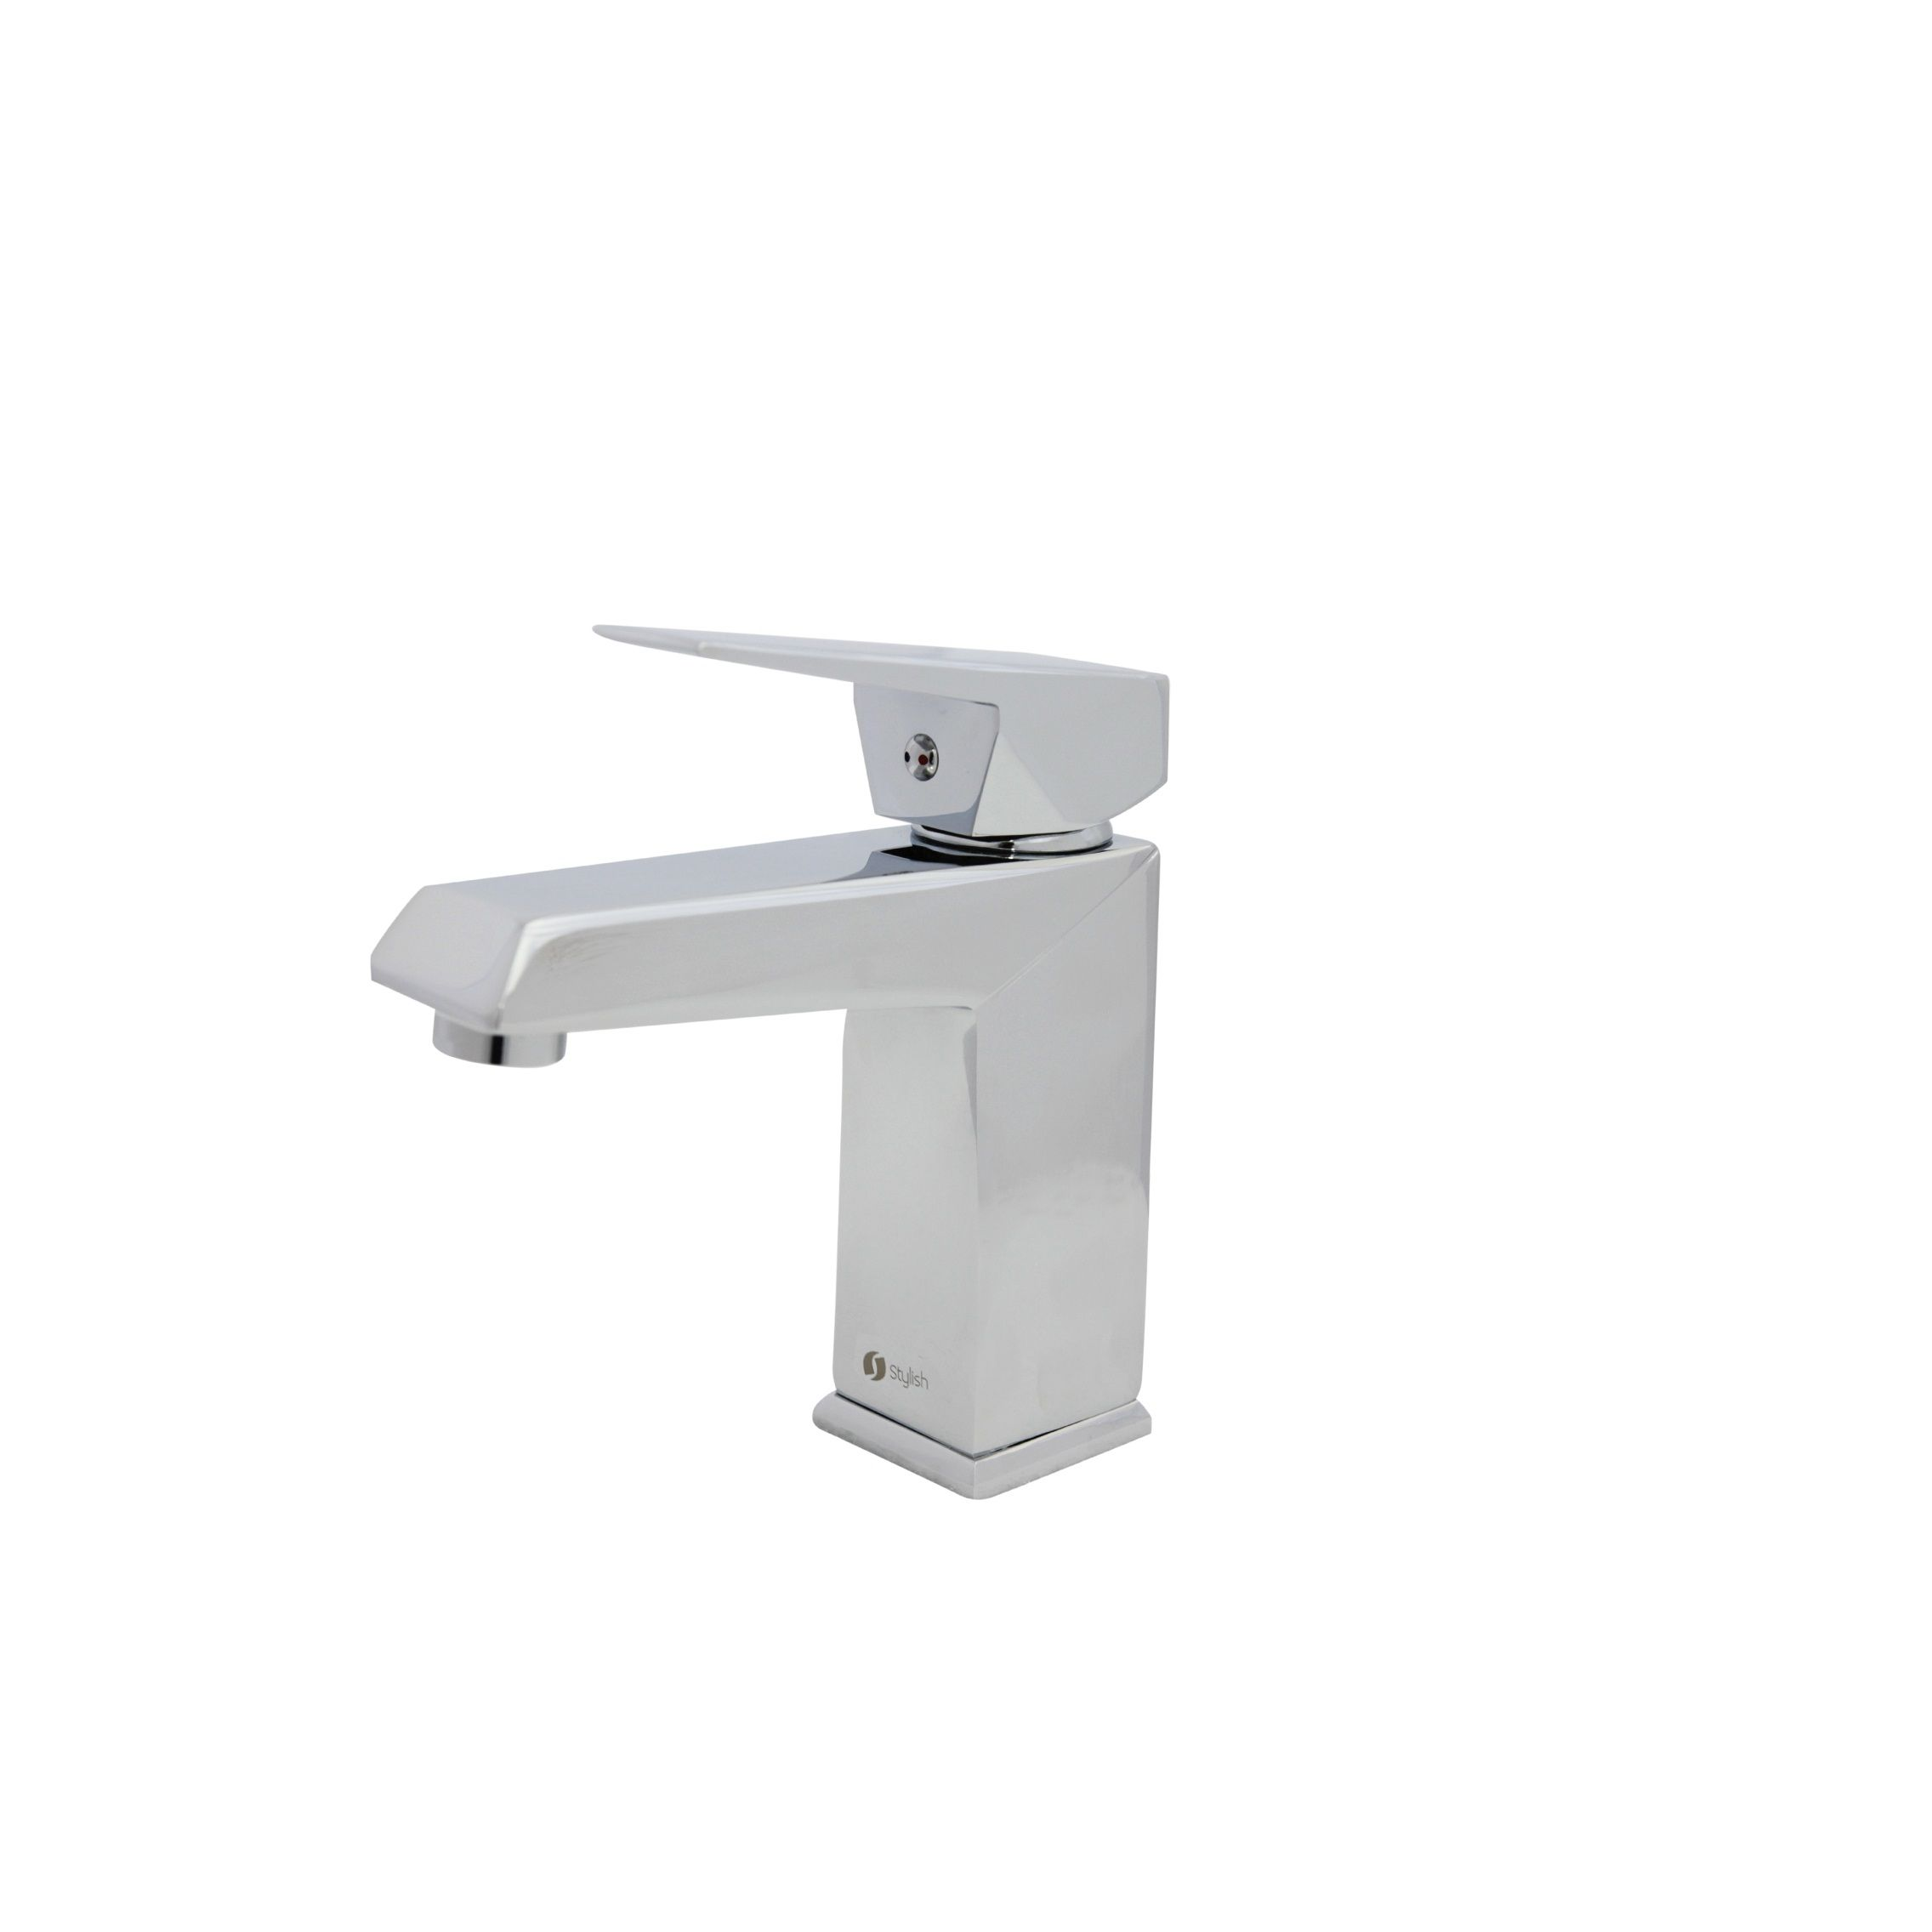 Image of: Single Handle Bathroom Faucet Walmart Canada